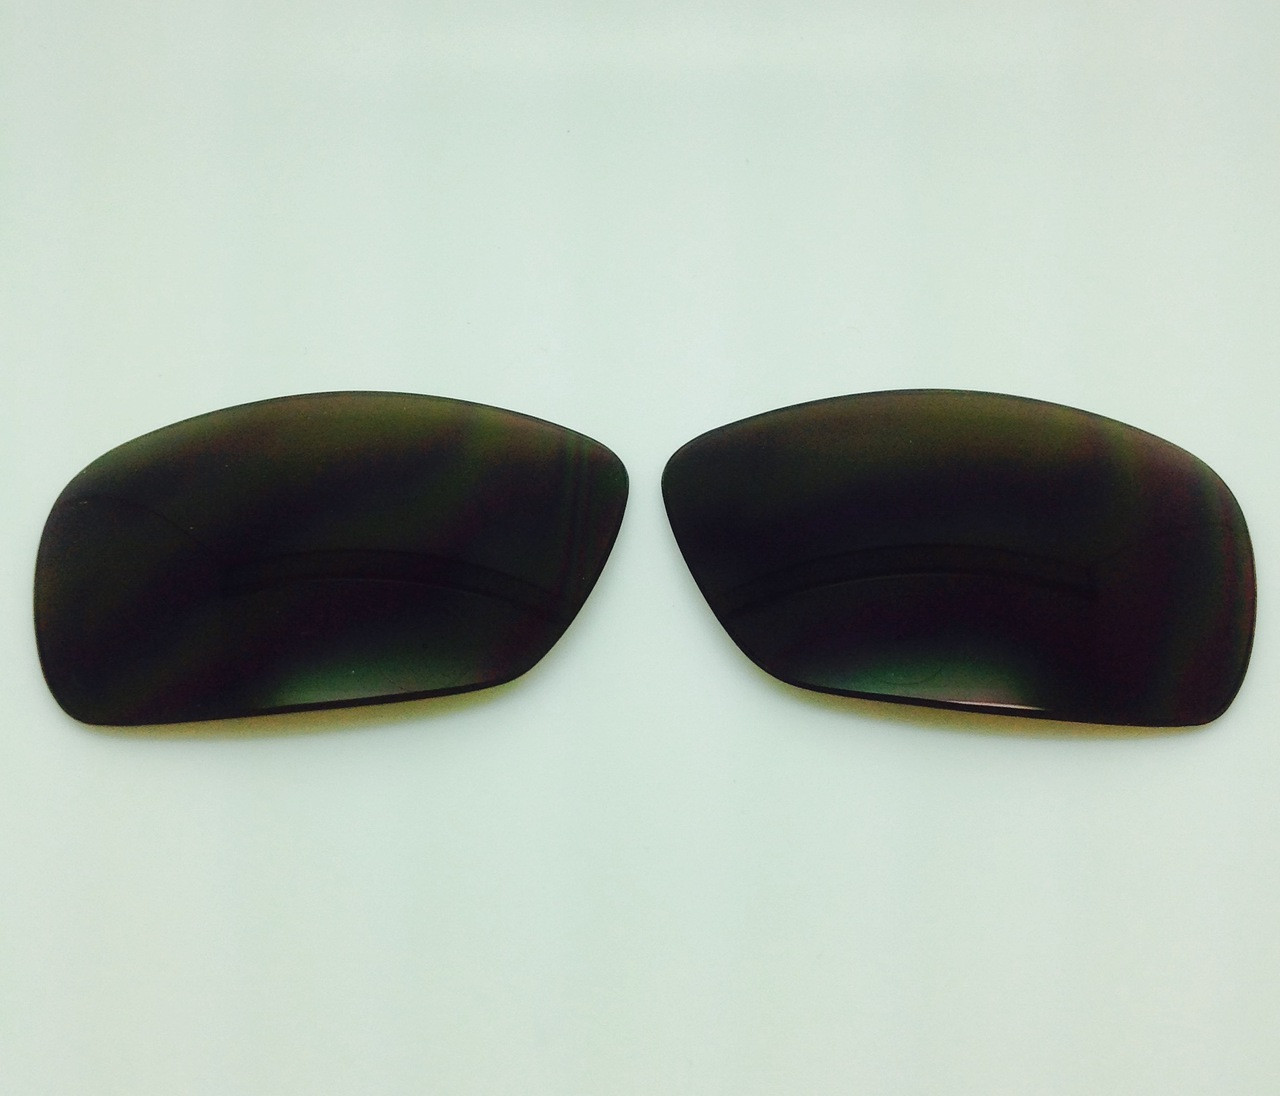 54920c0cf37c6 Rayban RB 4034 Aftermarket Lens Set -Brown Polarized Lenses (lenses ...